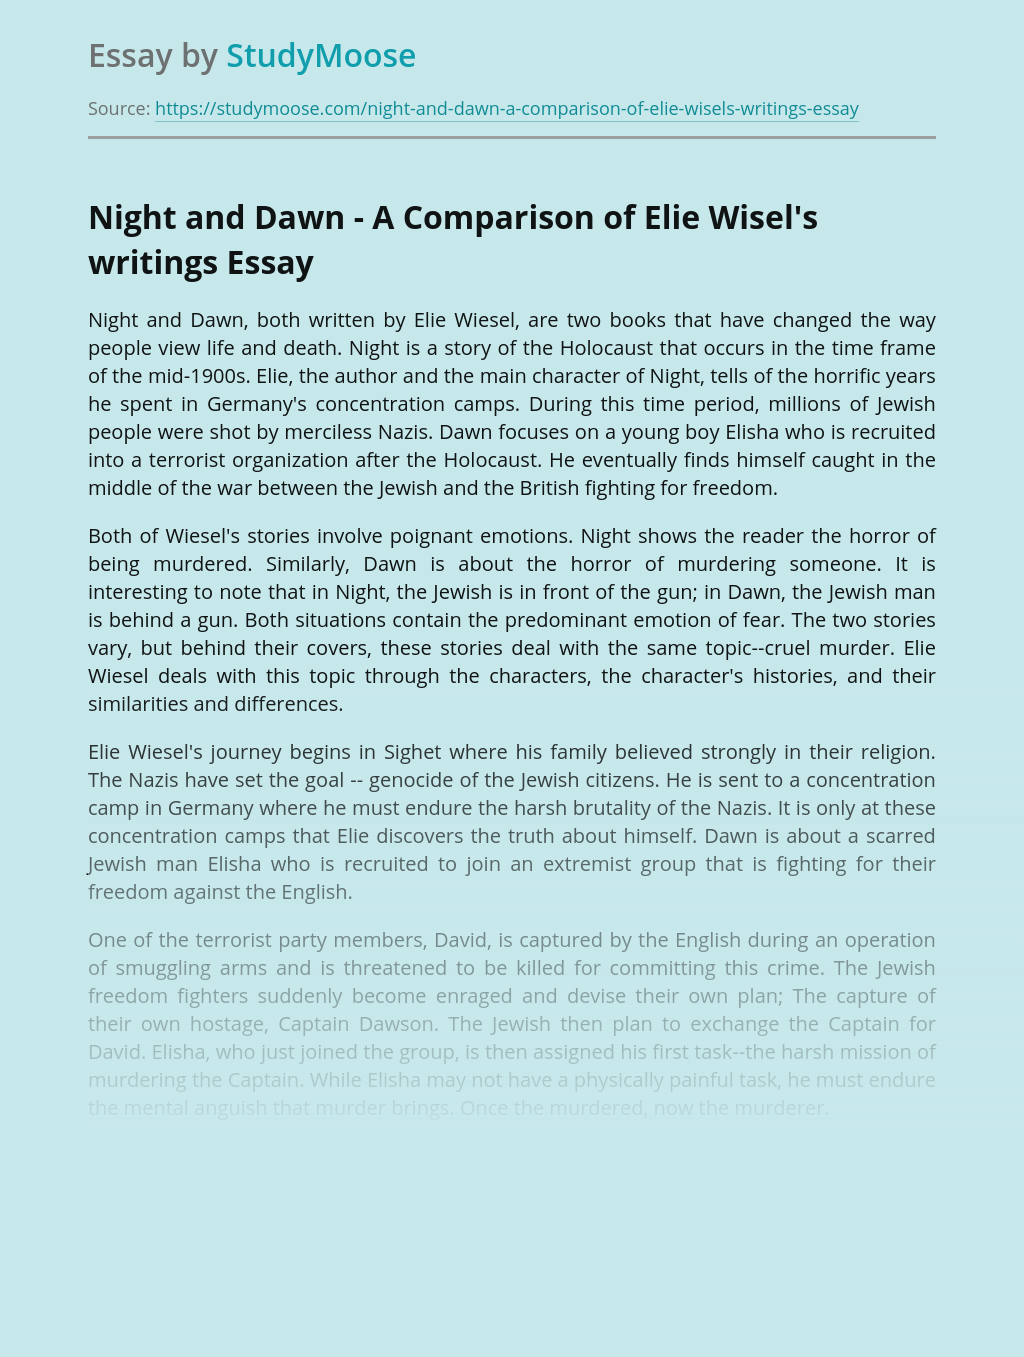 Night and Dawn - A Comparison of Elie Wisel's writings